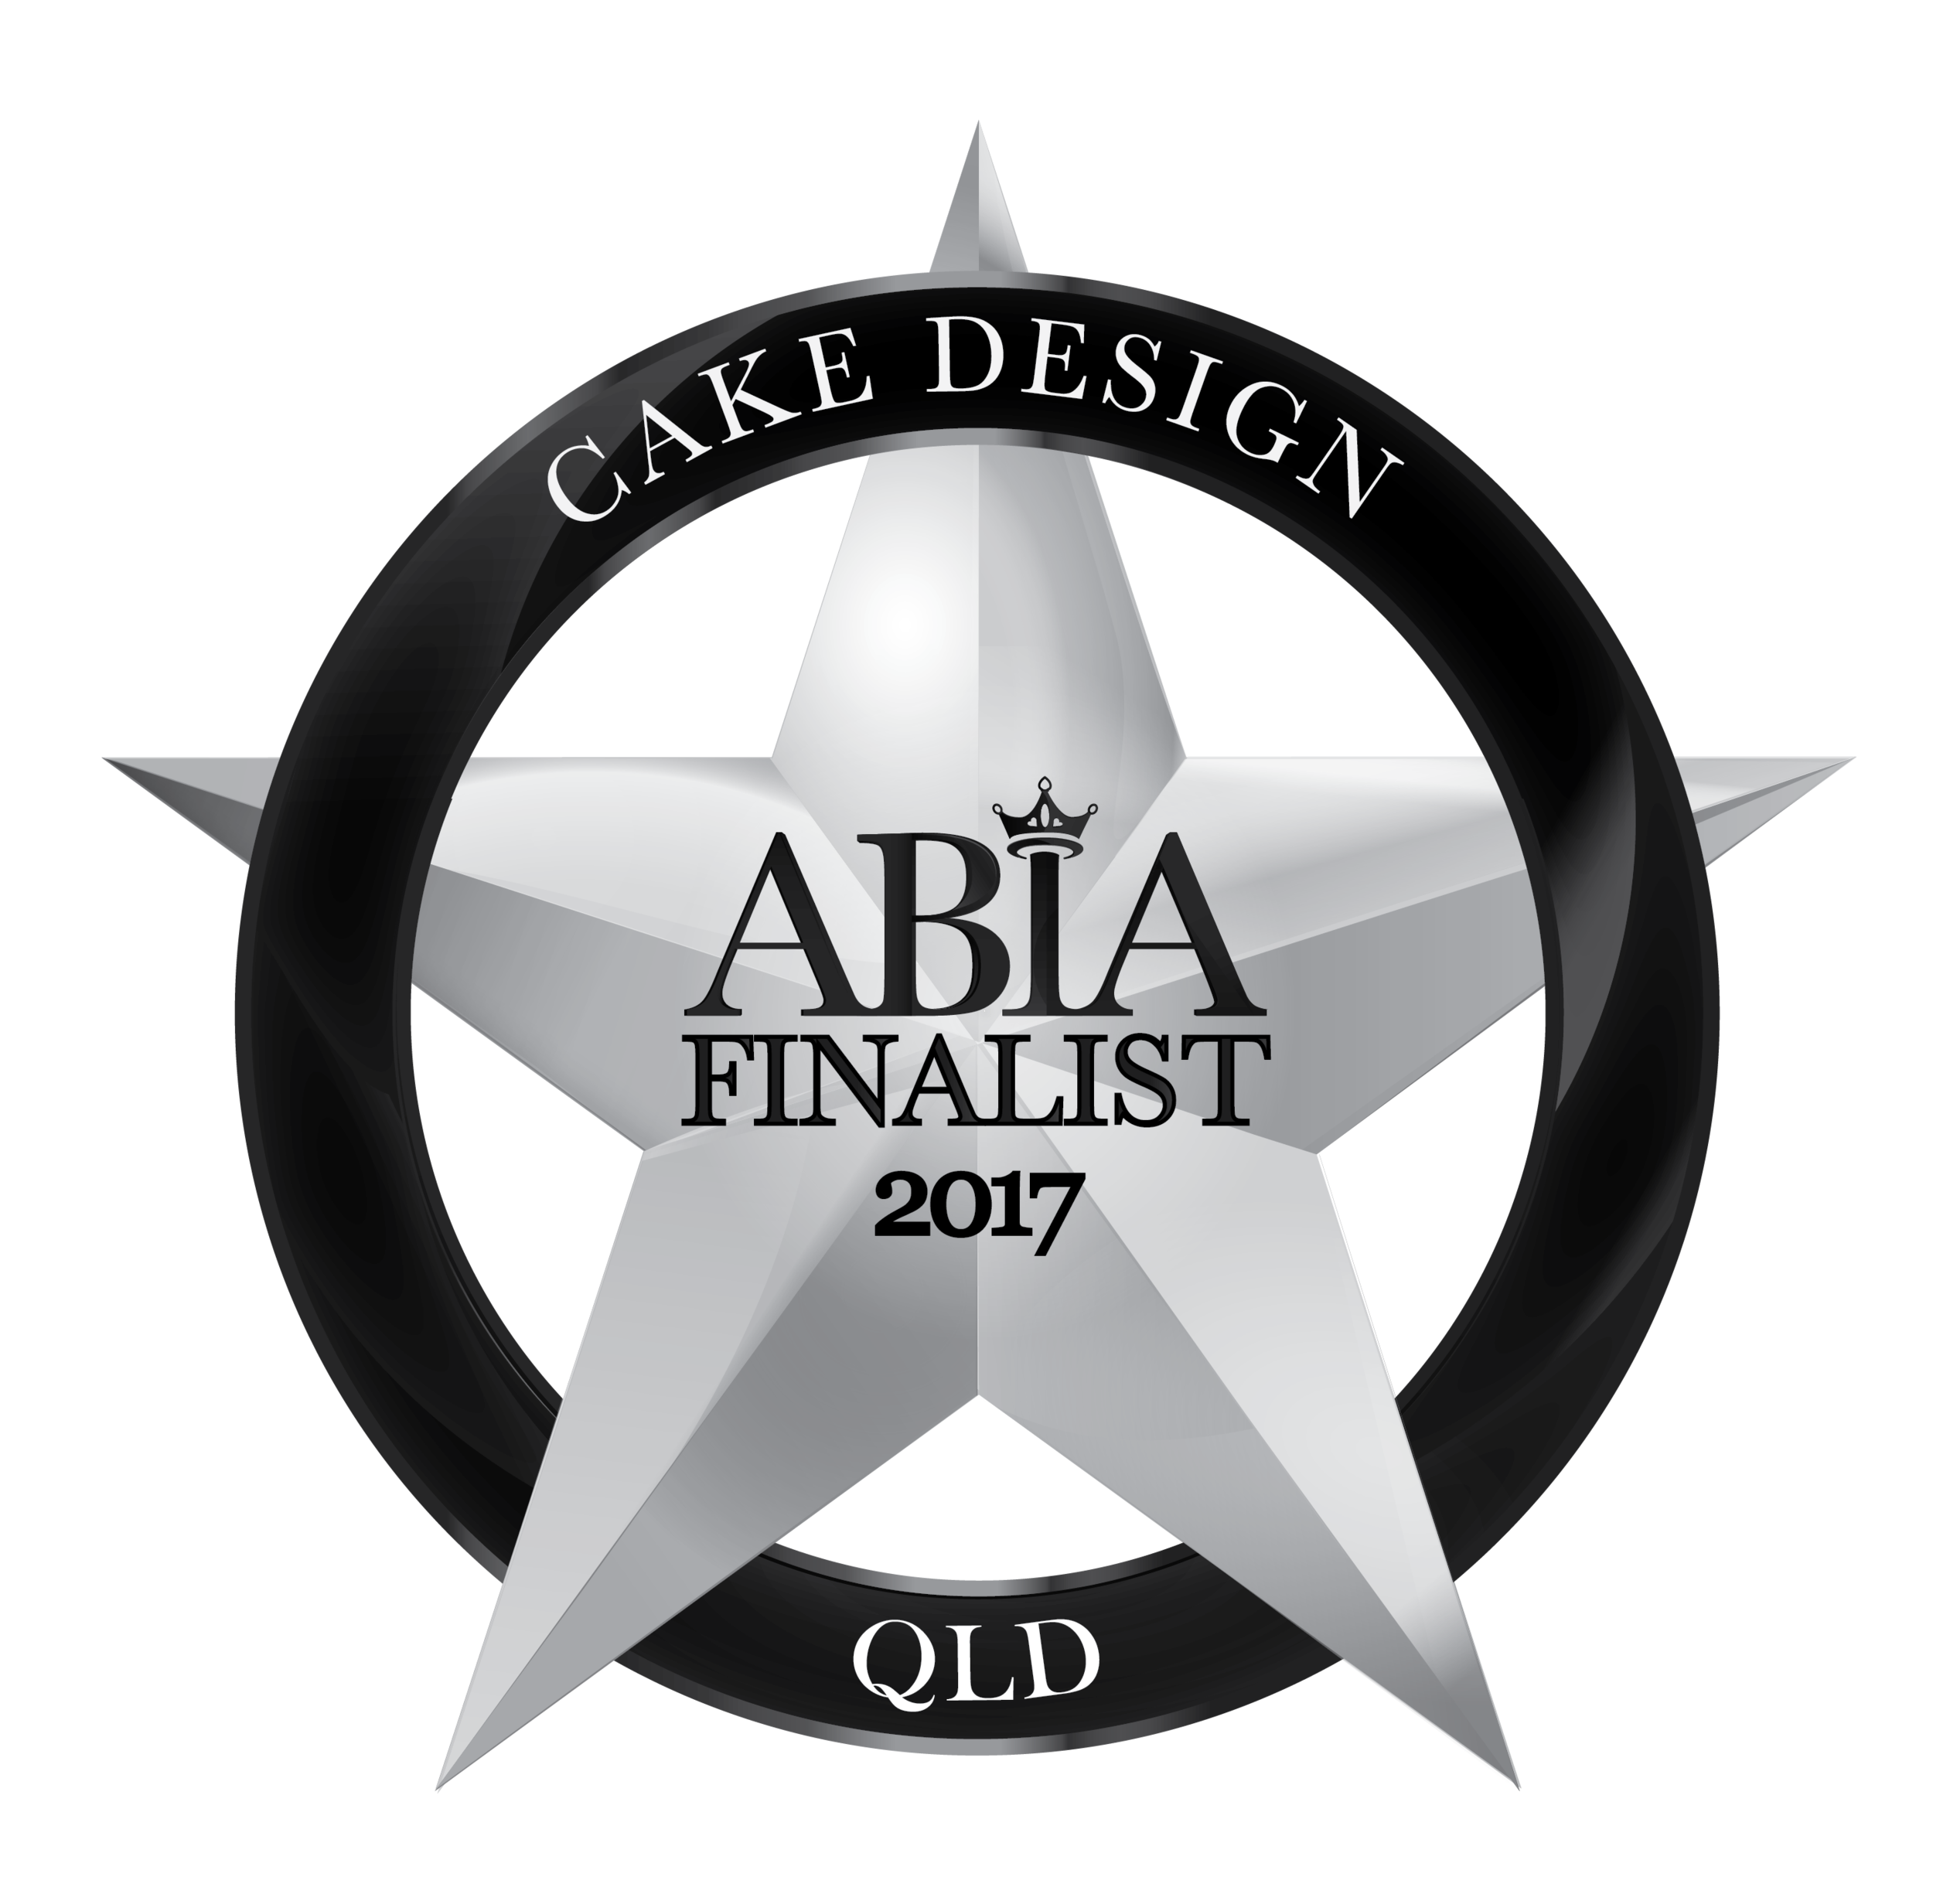 ABIA Finalist 2017 - Proud to announce that Sweet Art Creations was a Finalist in the Australian Bridal Industry Awards for 2017! Thank you so much to all my wonderful brides who have rated my services and nominated me for these prestigious awards.